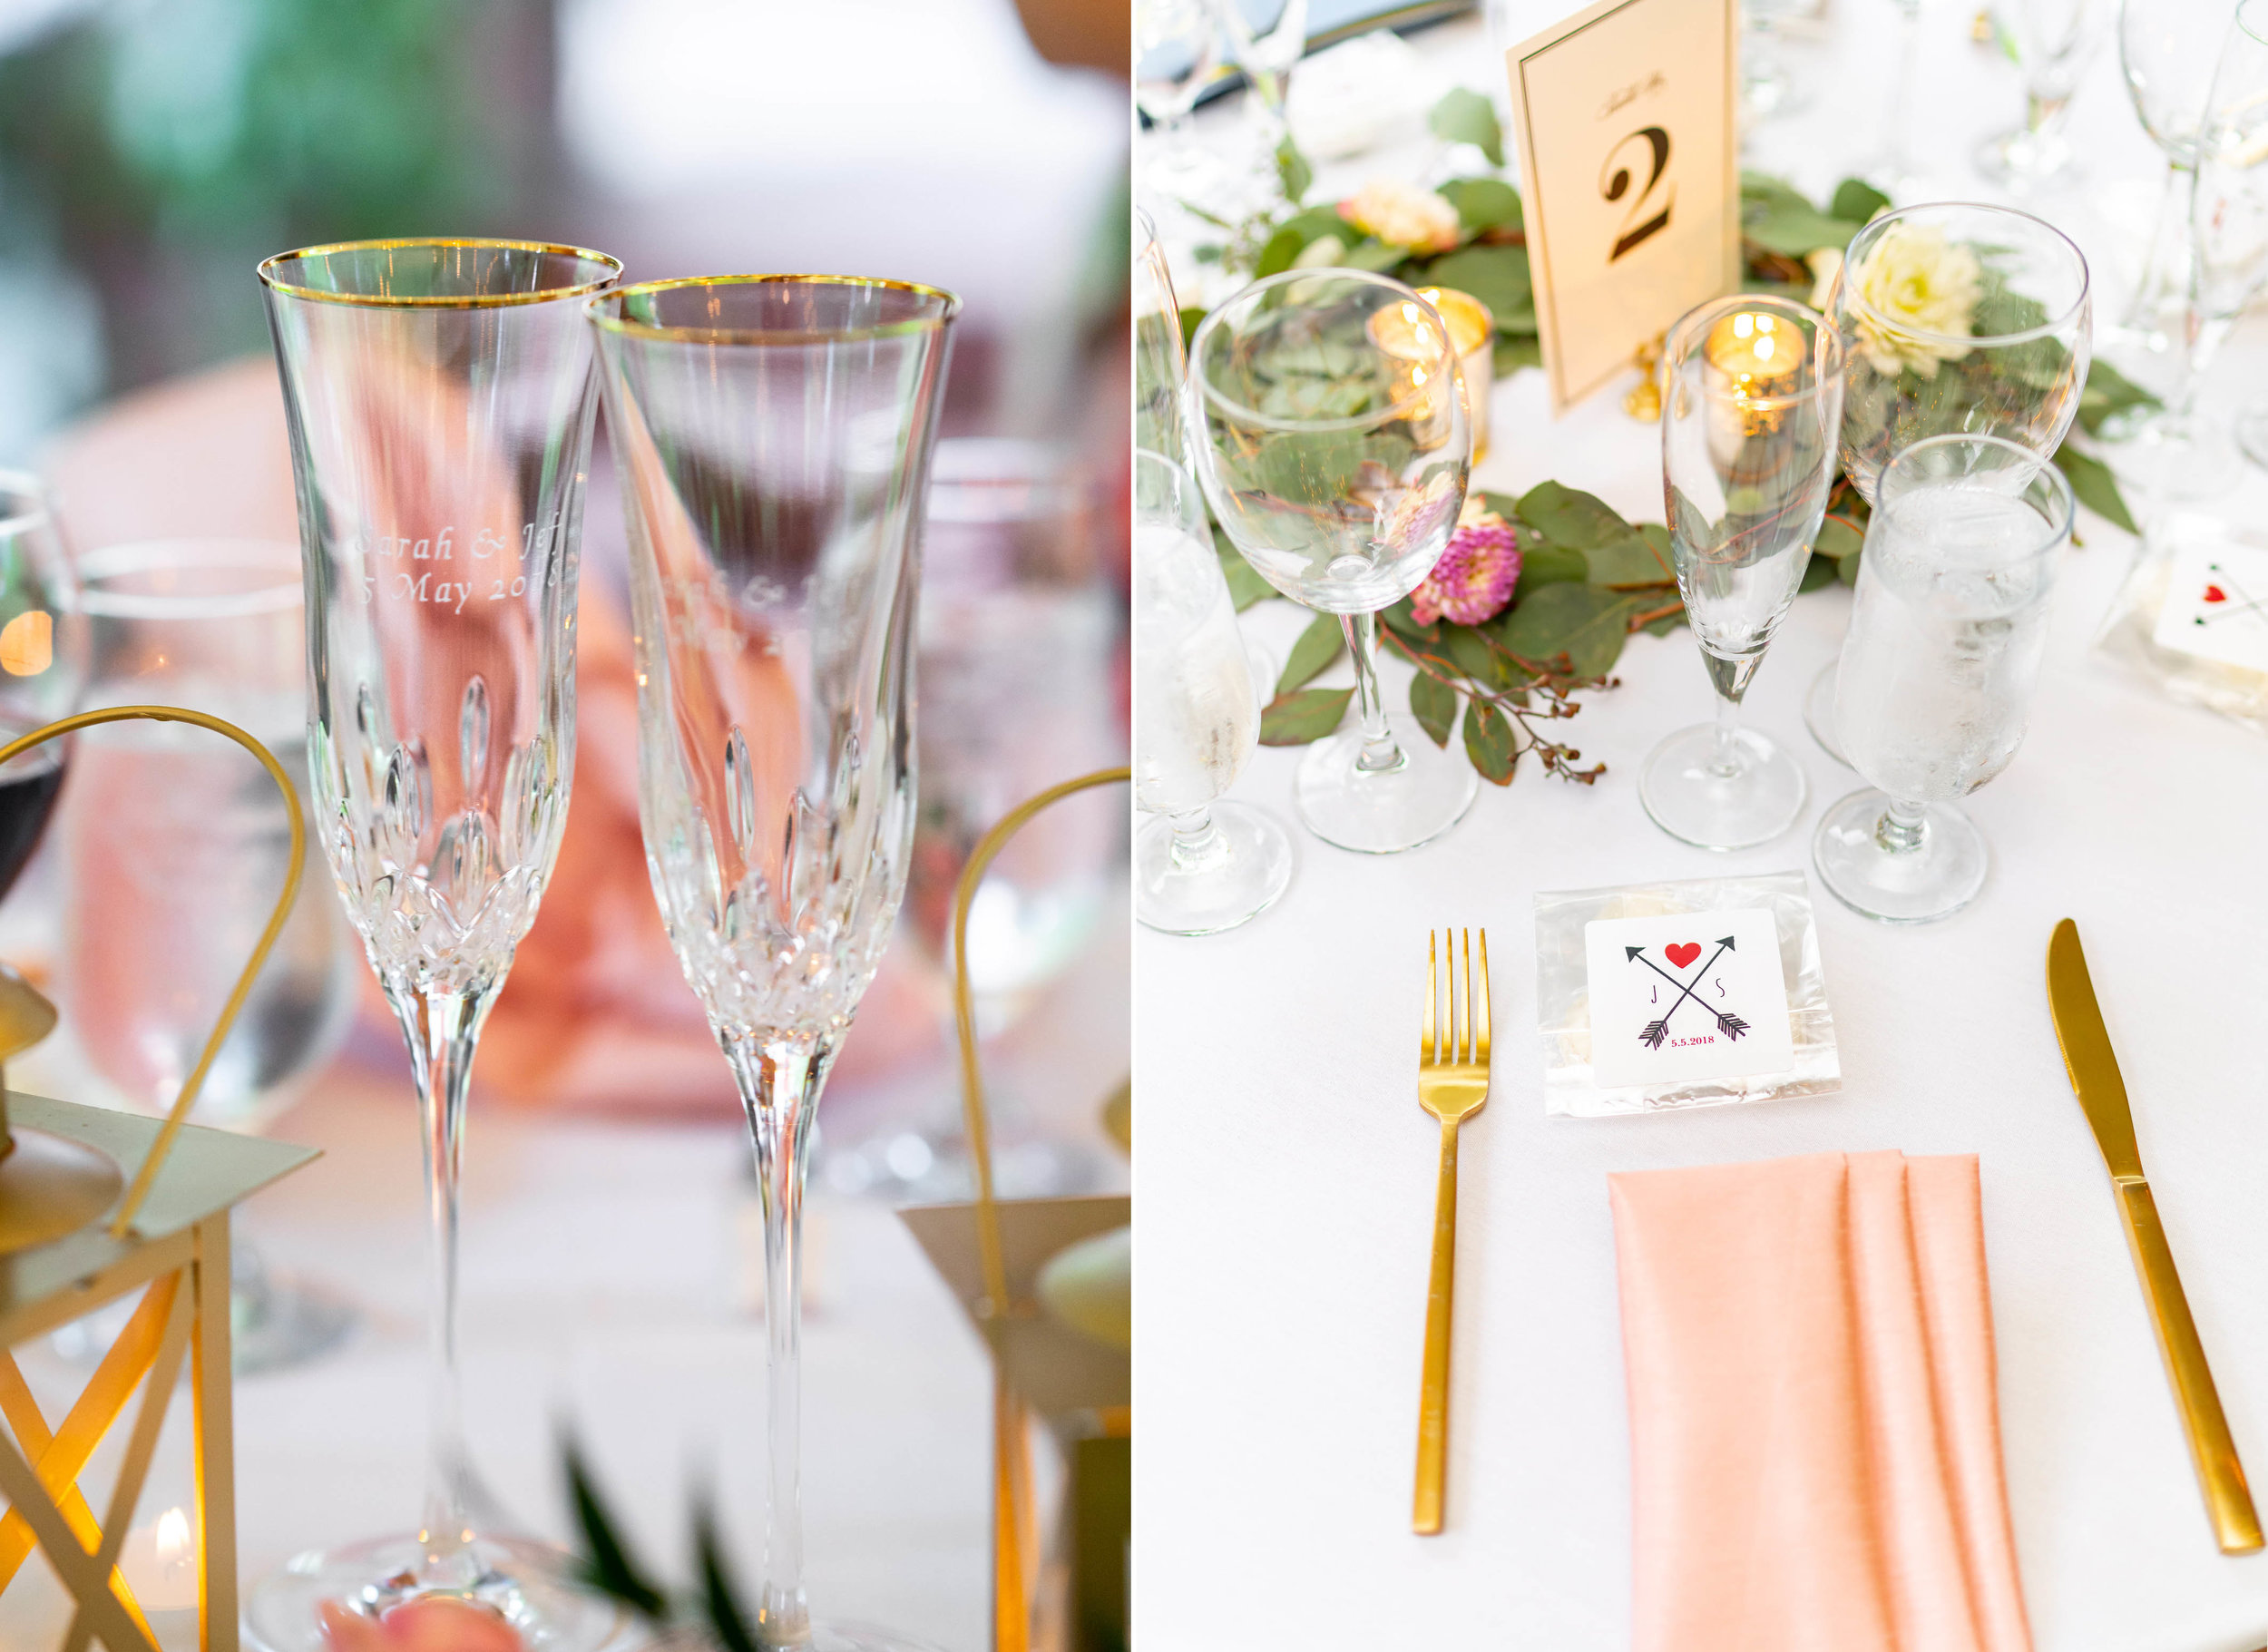 Yellow gold mixed with rose gold details at wedding reception at Hendry House